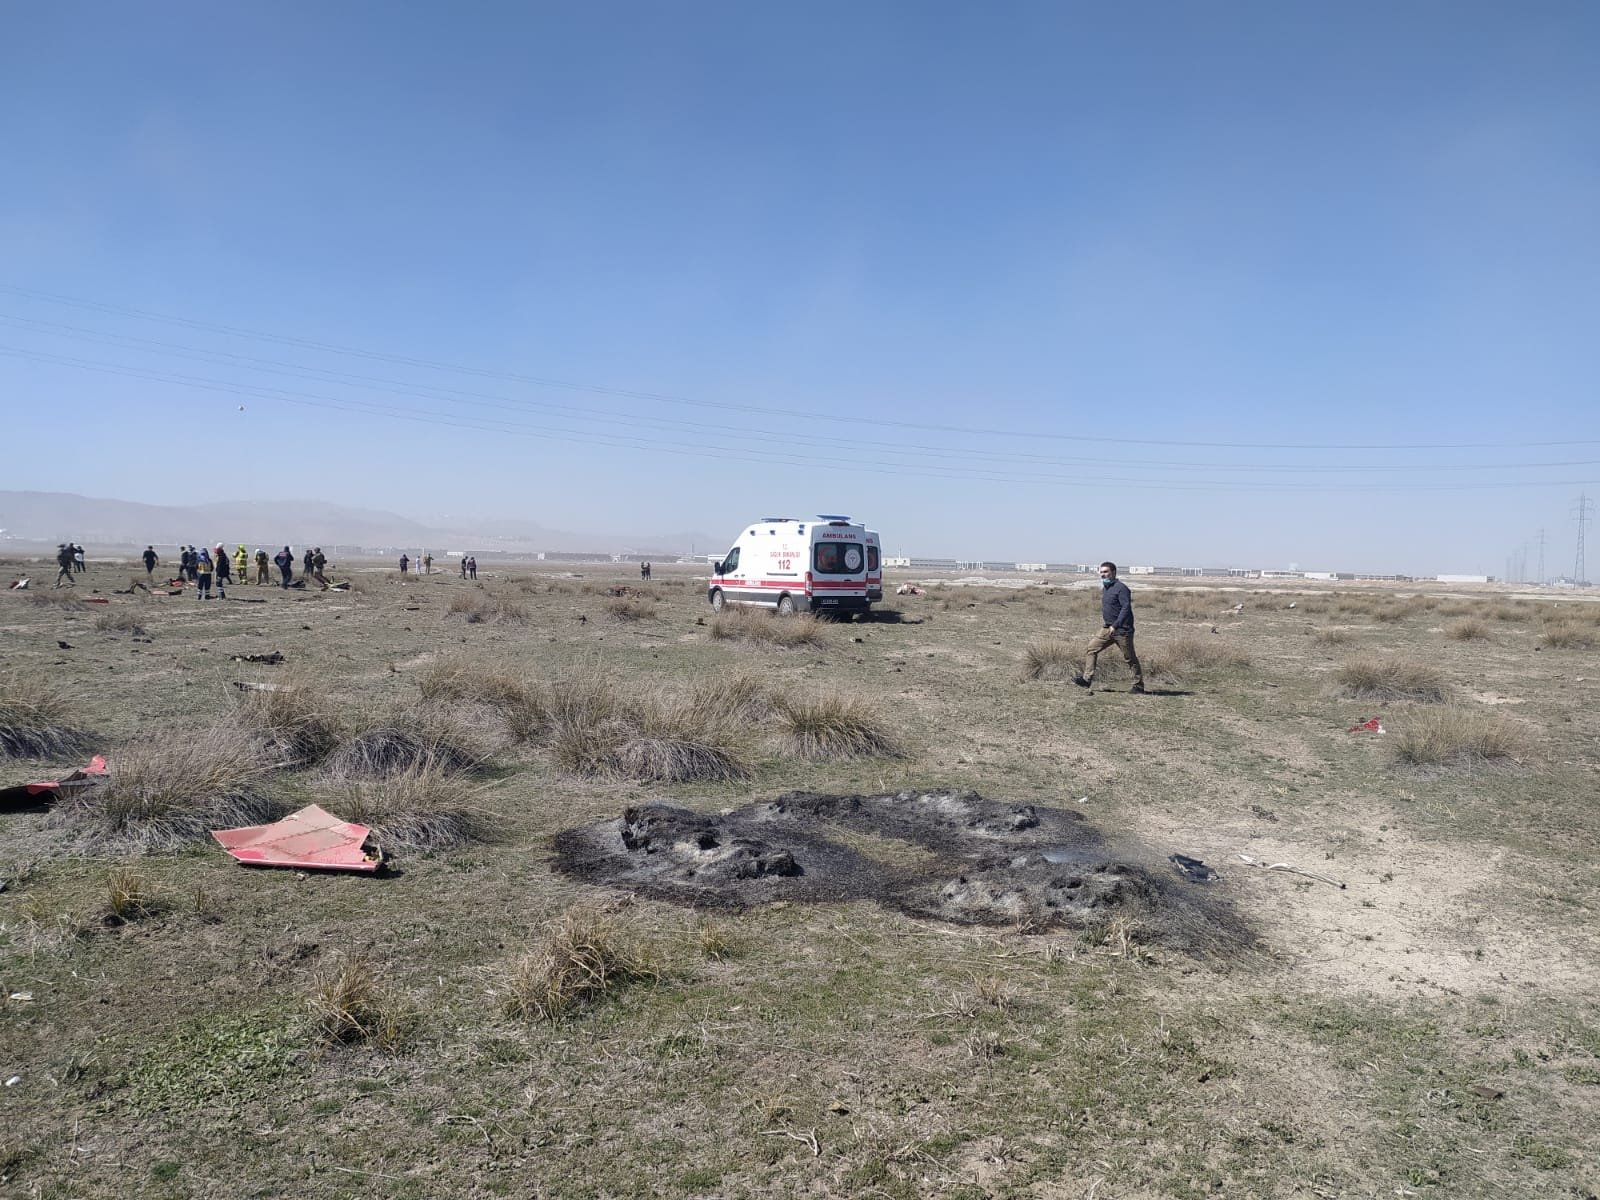 A view of the crash site where parts of the plane are scattered around, in Konya, central Turkey, Apr. 7, 2021. (AA PHOTO)